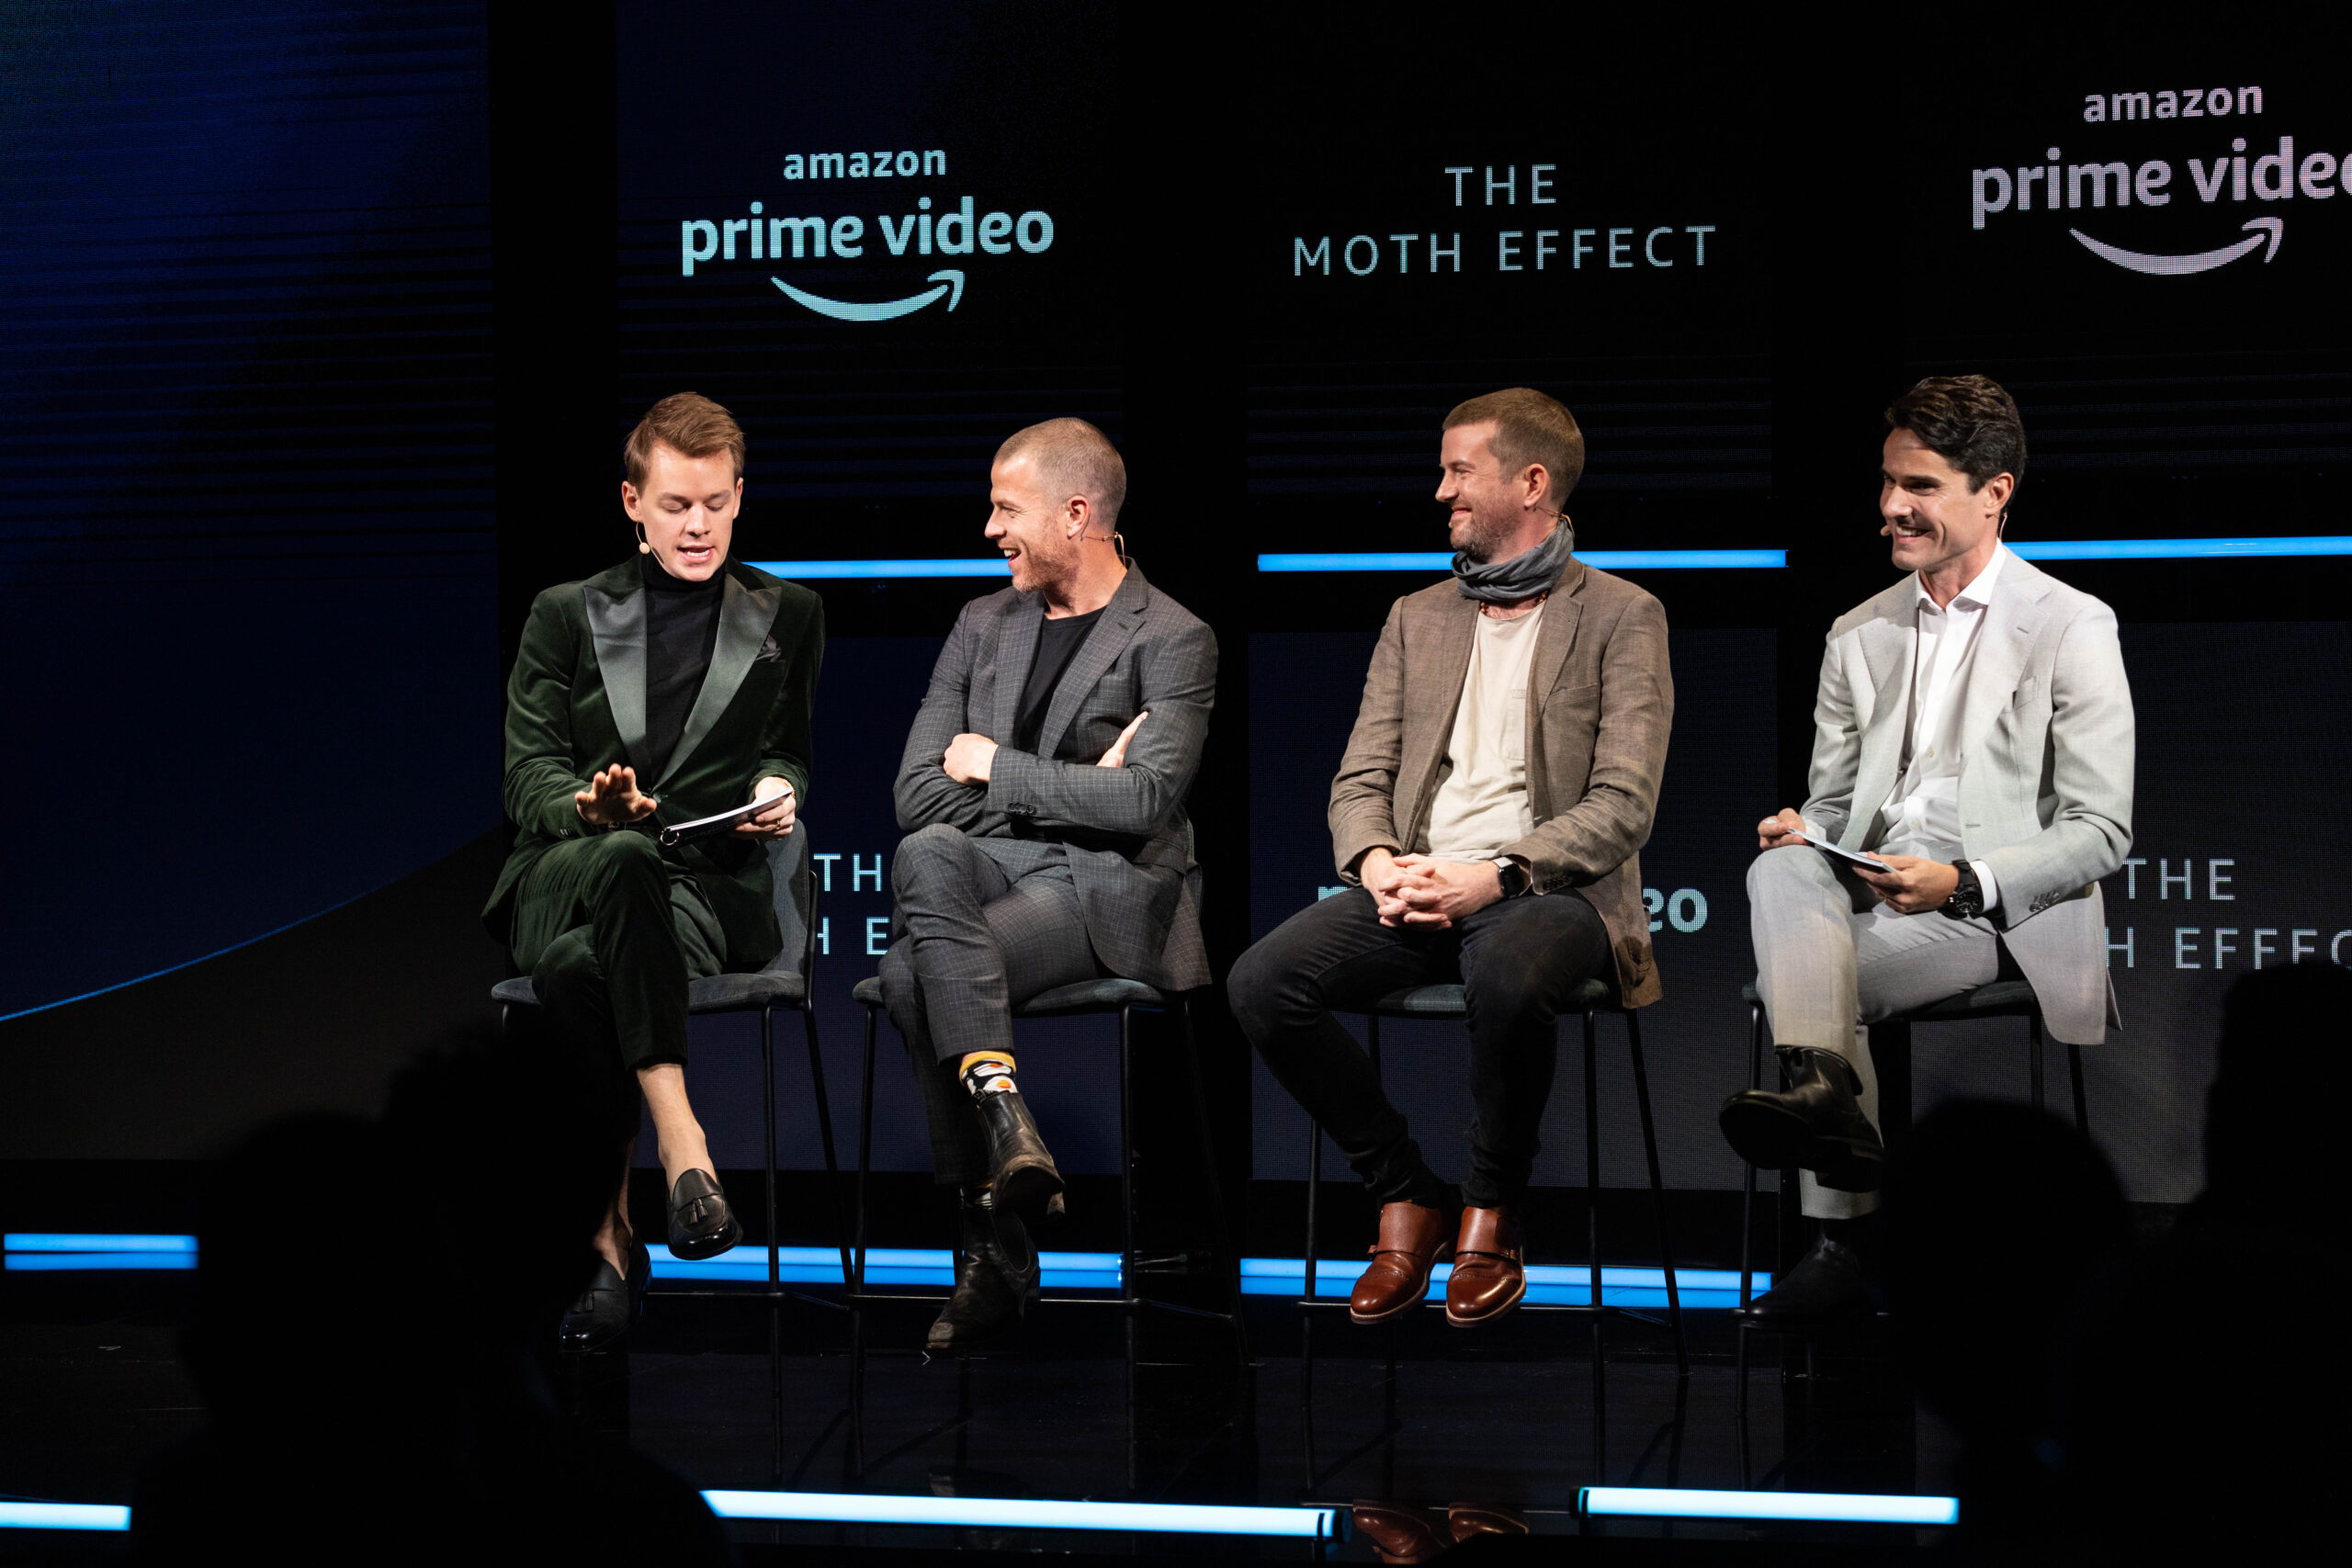 The Moth Effect premieres on Amazon July 30